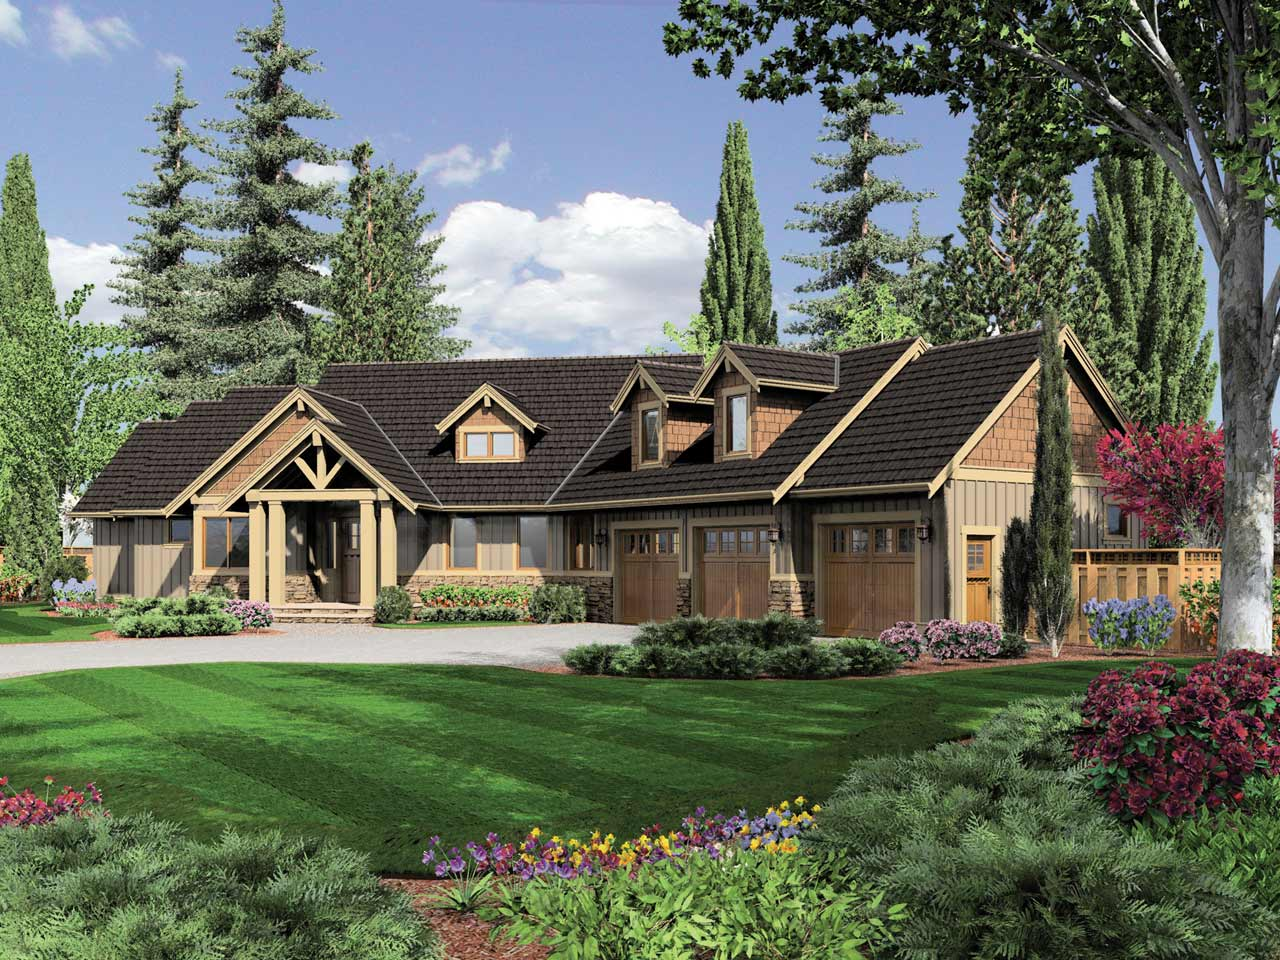 Craftsman Style Home Design 74-643